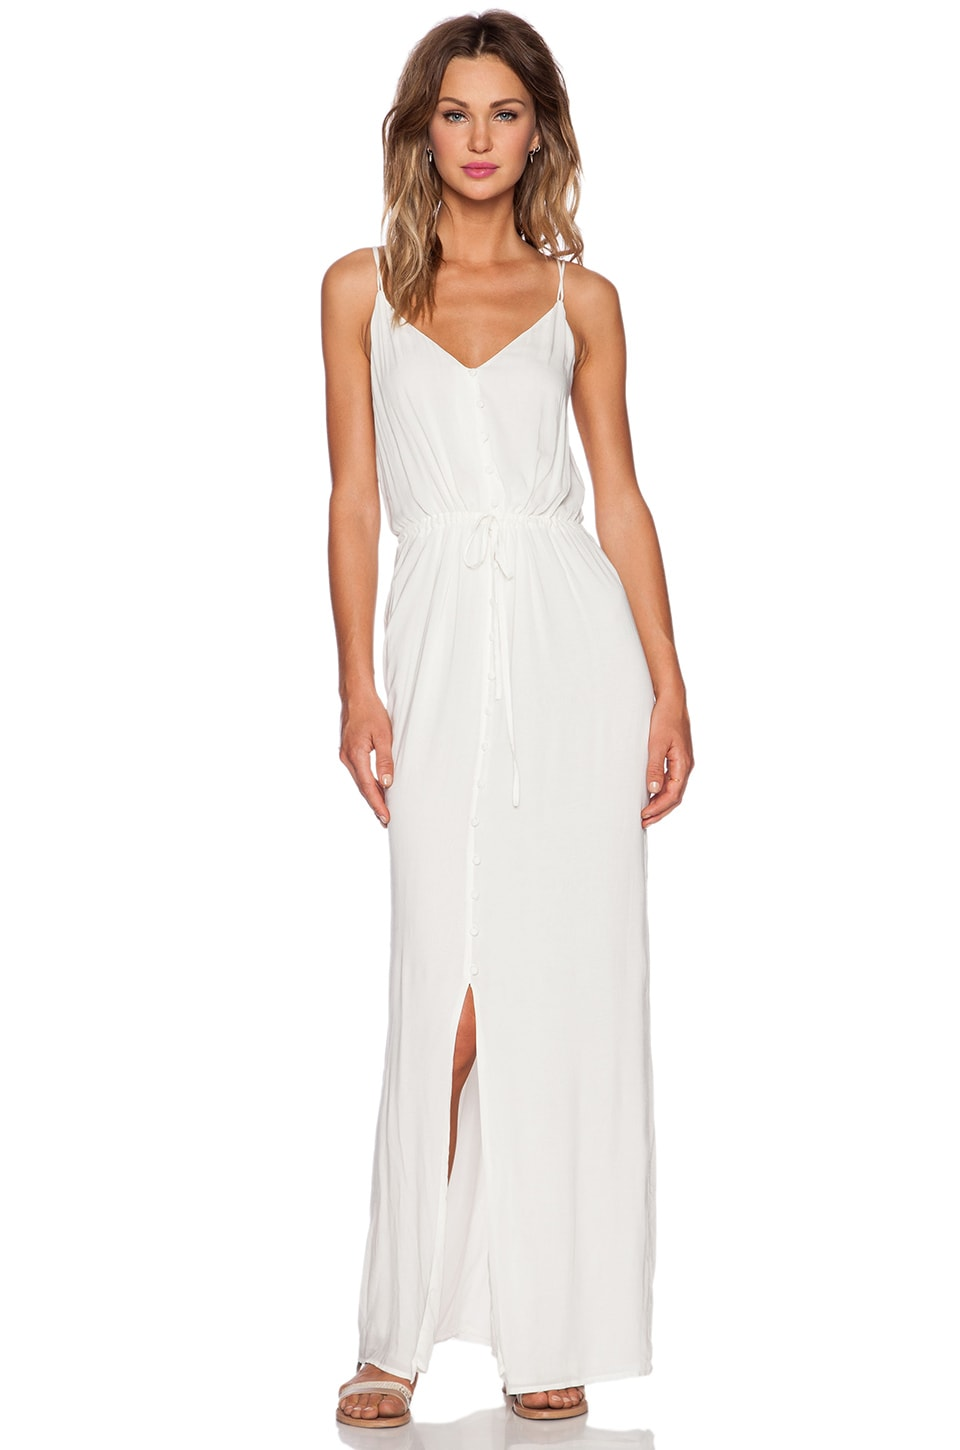 PAIGE Lyssa Dress in White